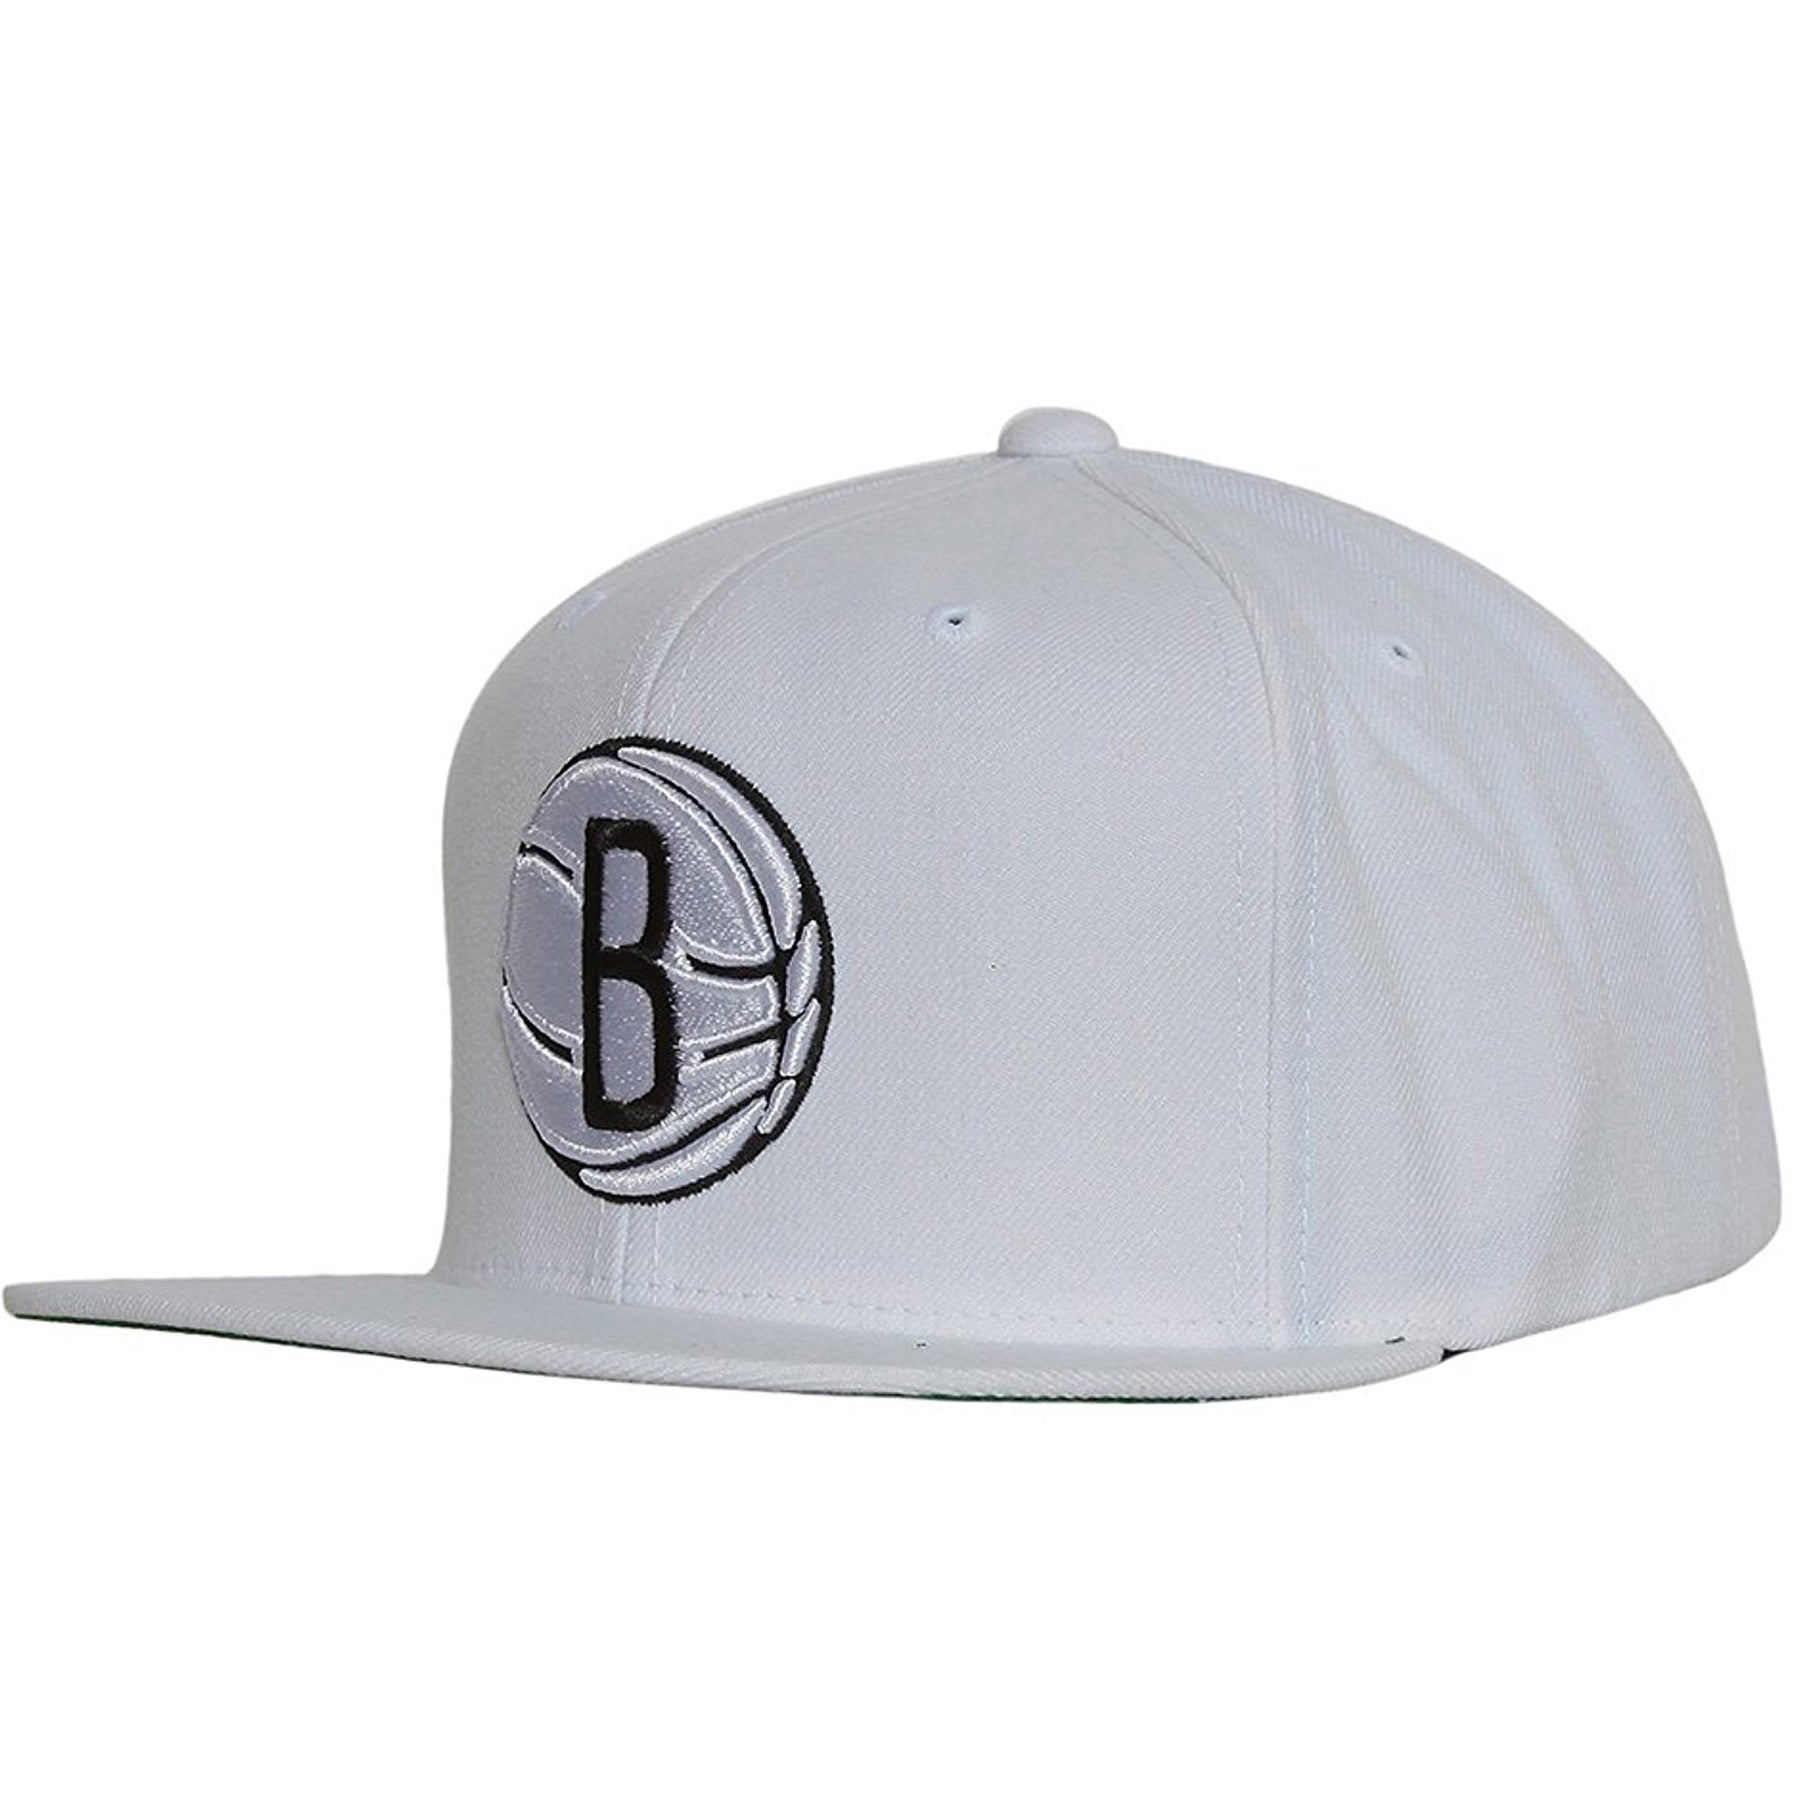 new concept ab160 dc3b8 ... the brooklyn nets classic white snapback hat has a high structured  white crown and a flat ...